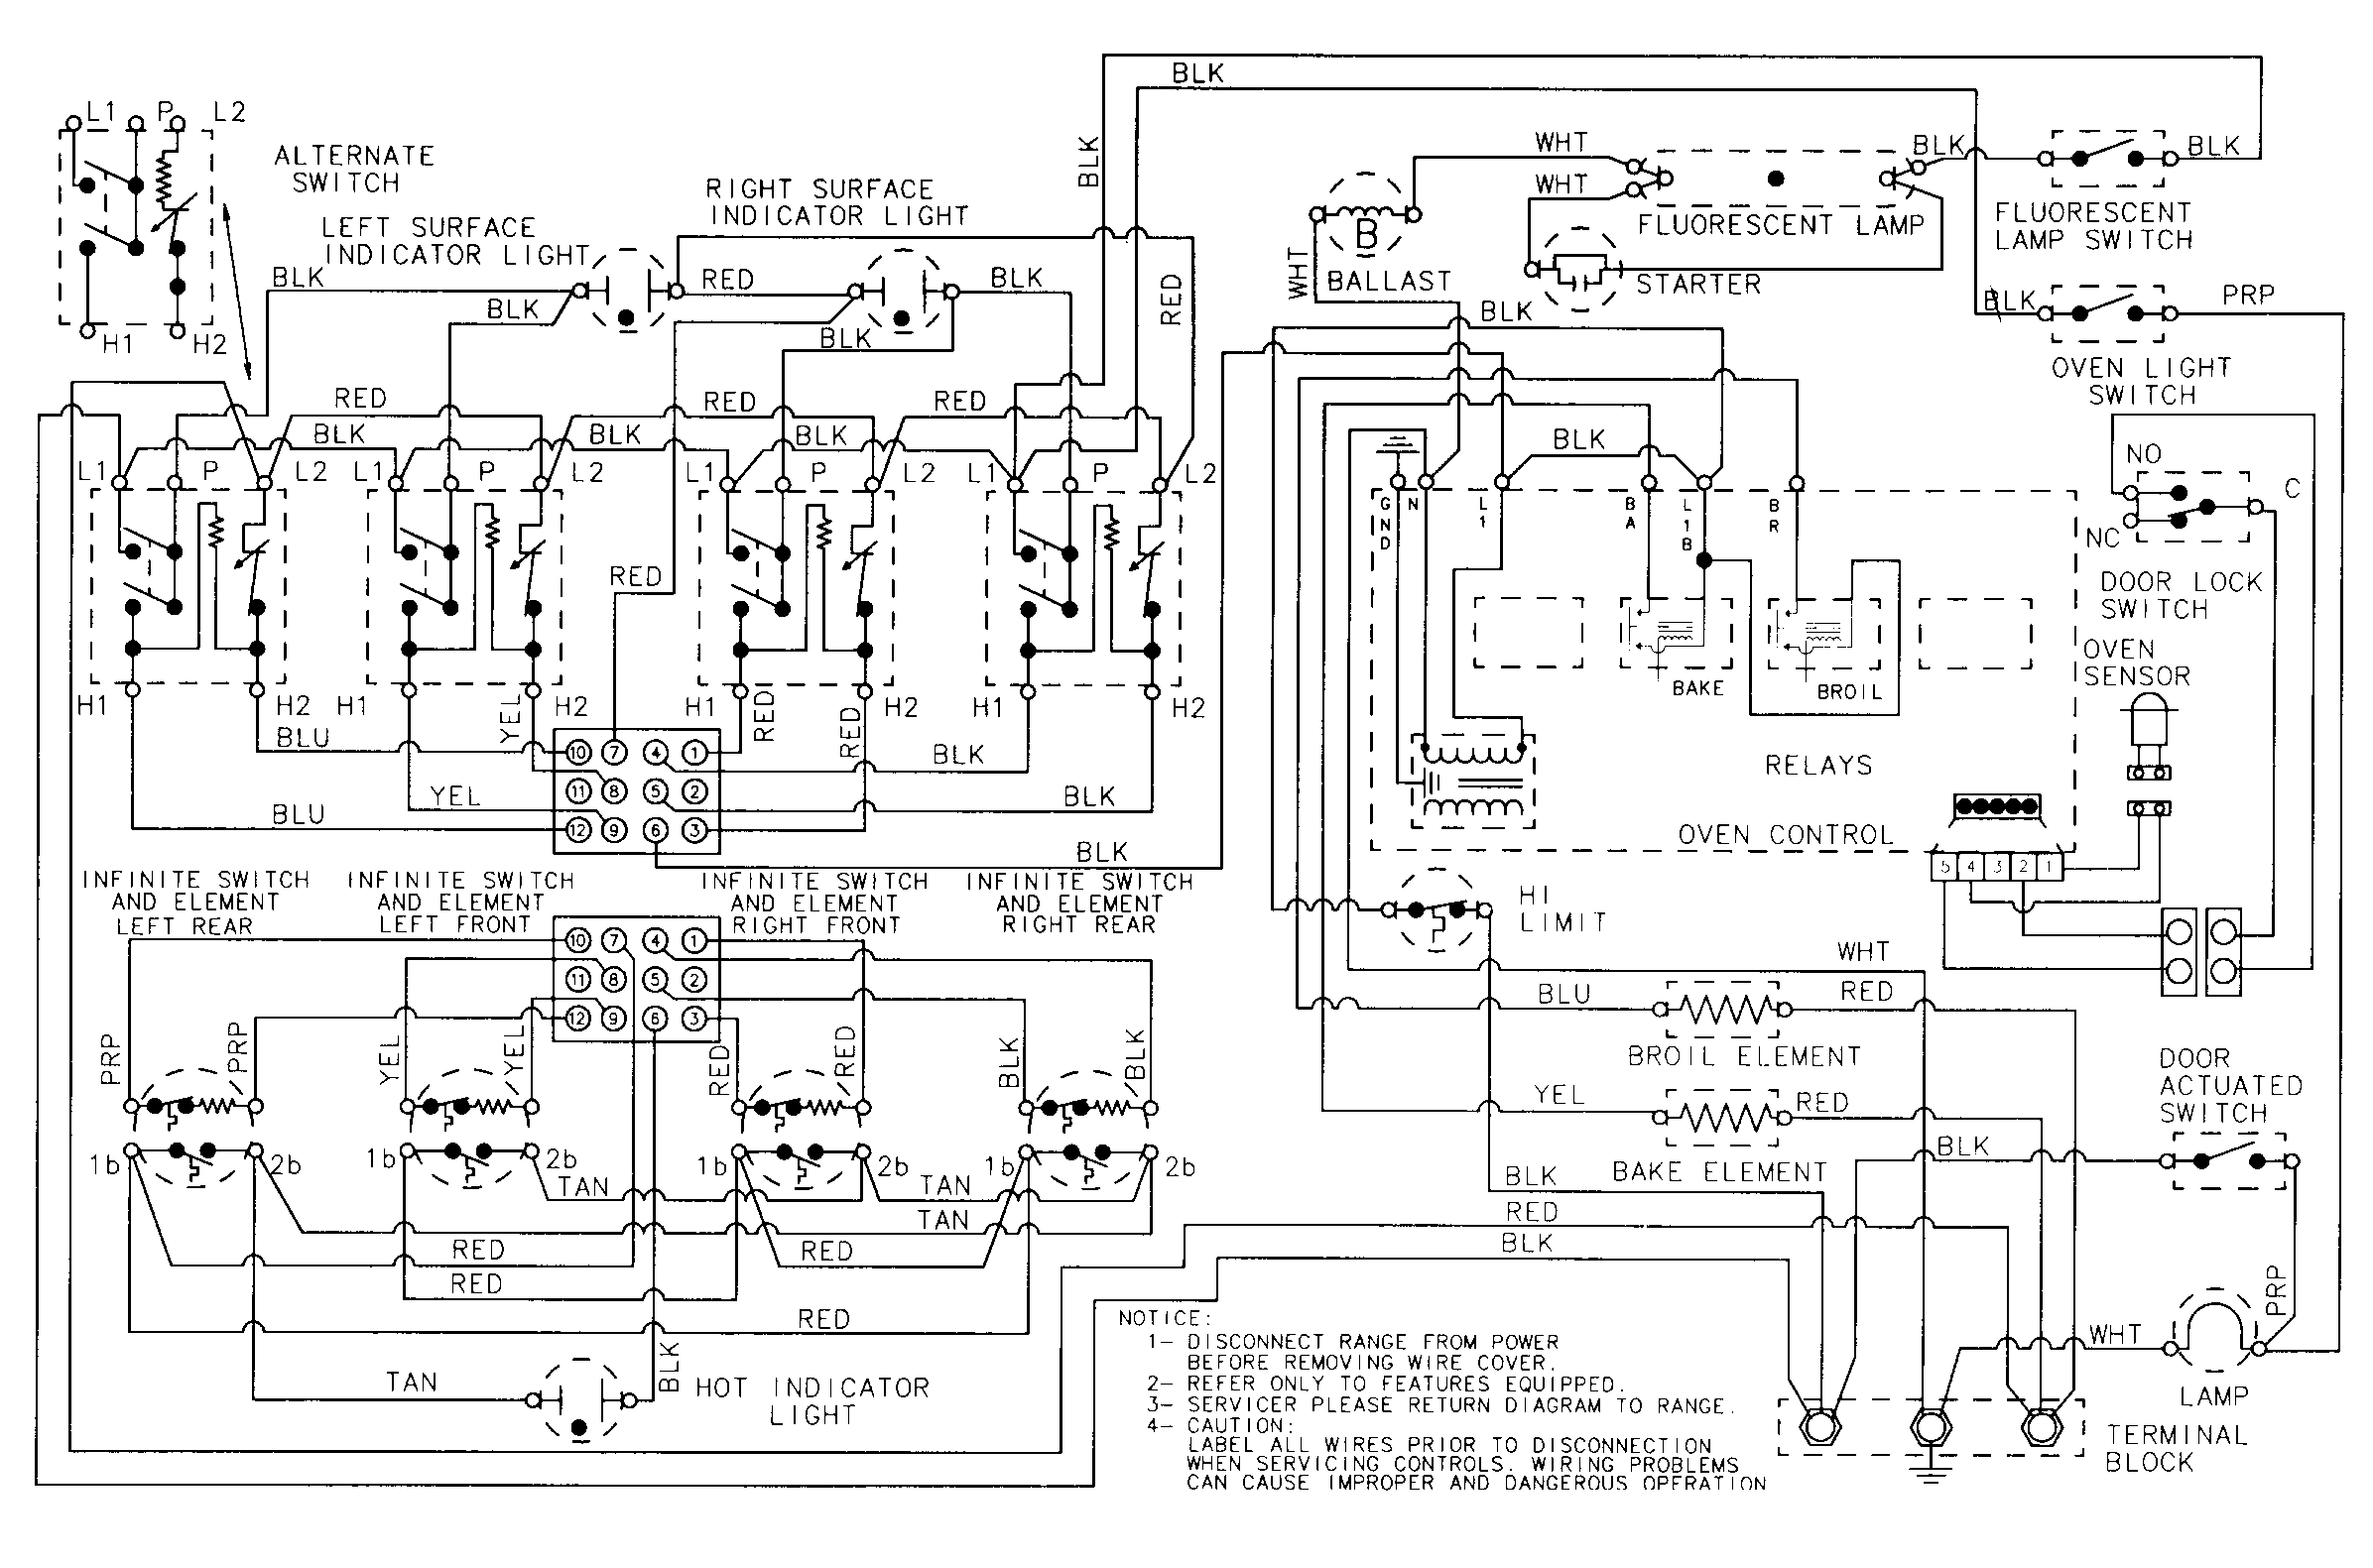 Famous whirlpool gas dryer wiring diagram motif best images for whirlpool gas dryer wiring diagram collection wiring diagram sample publicscrutiny Image collections